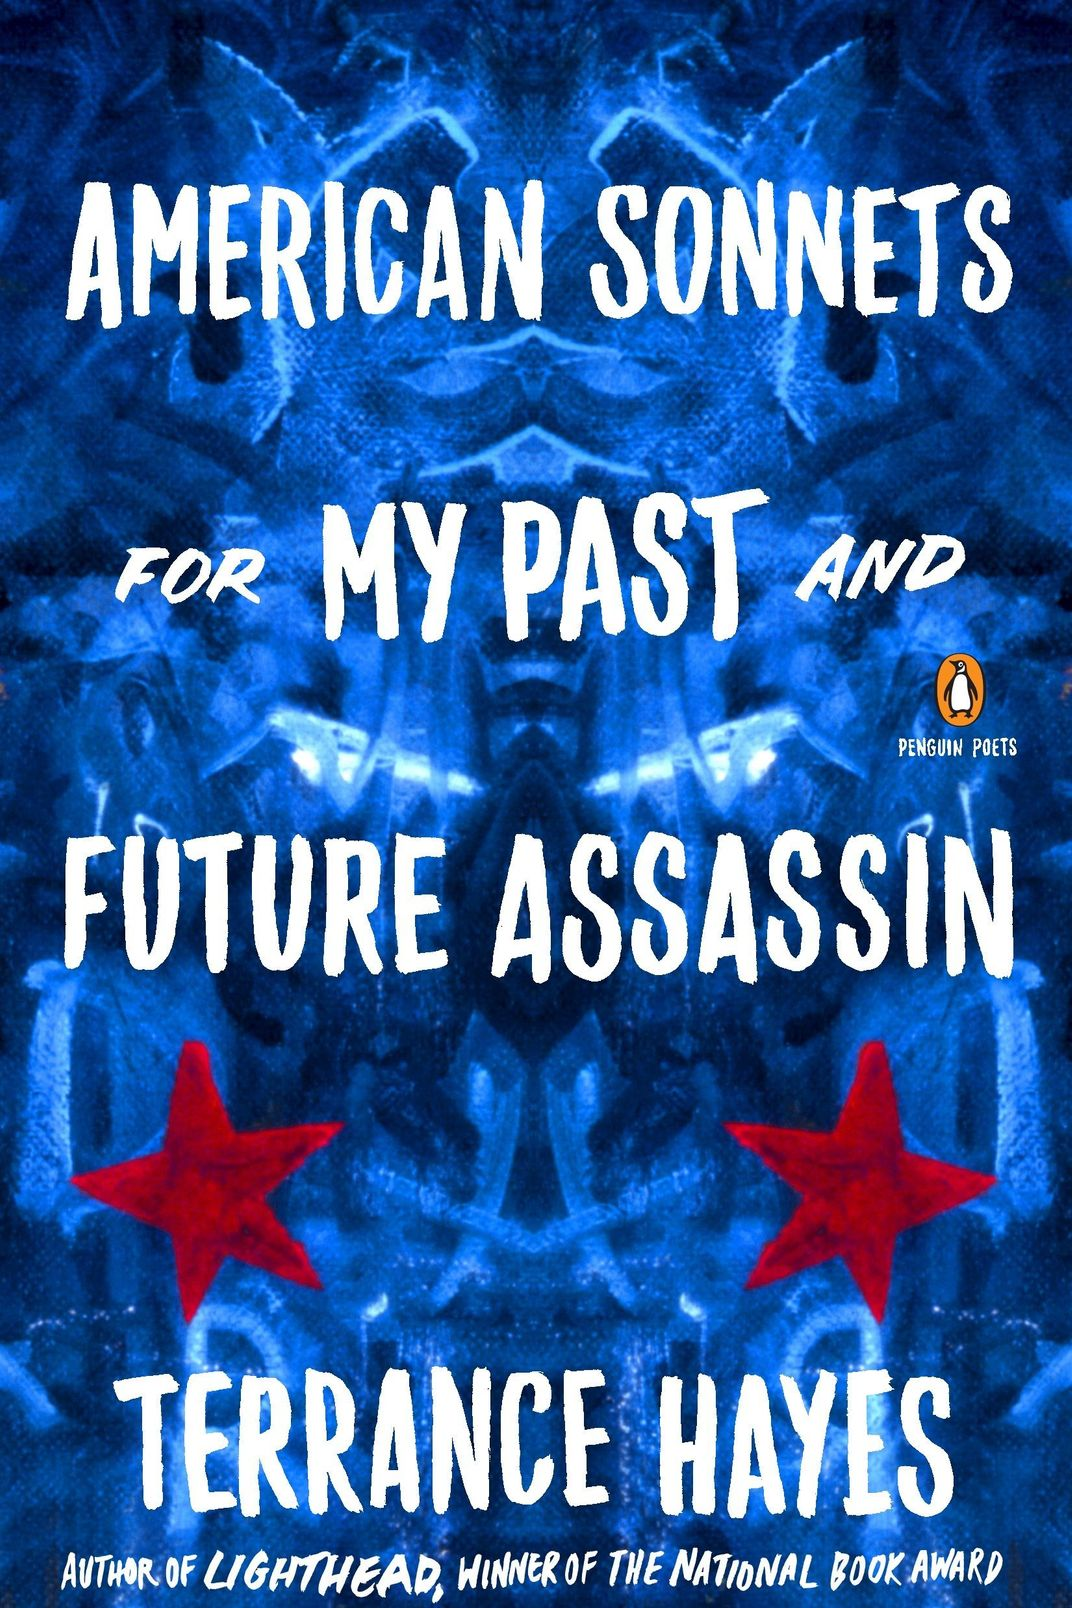 <em>American Sonnets for My Past and Future Assassin</em>, by Terrance Hayes (Penguin Books)